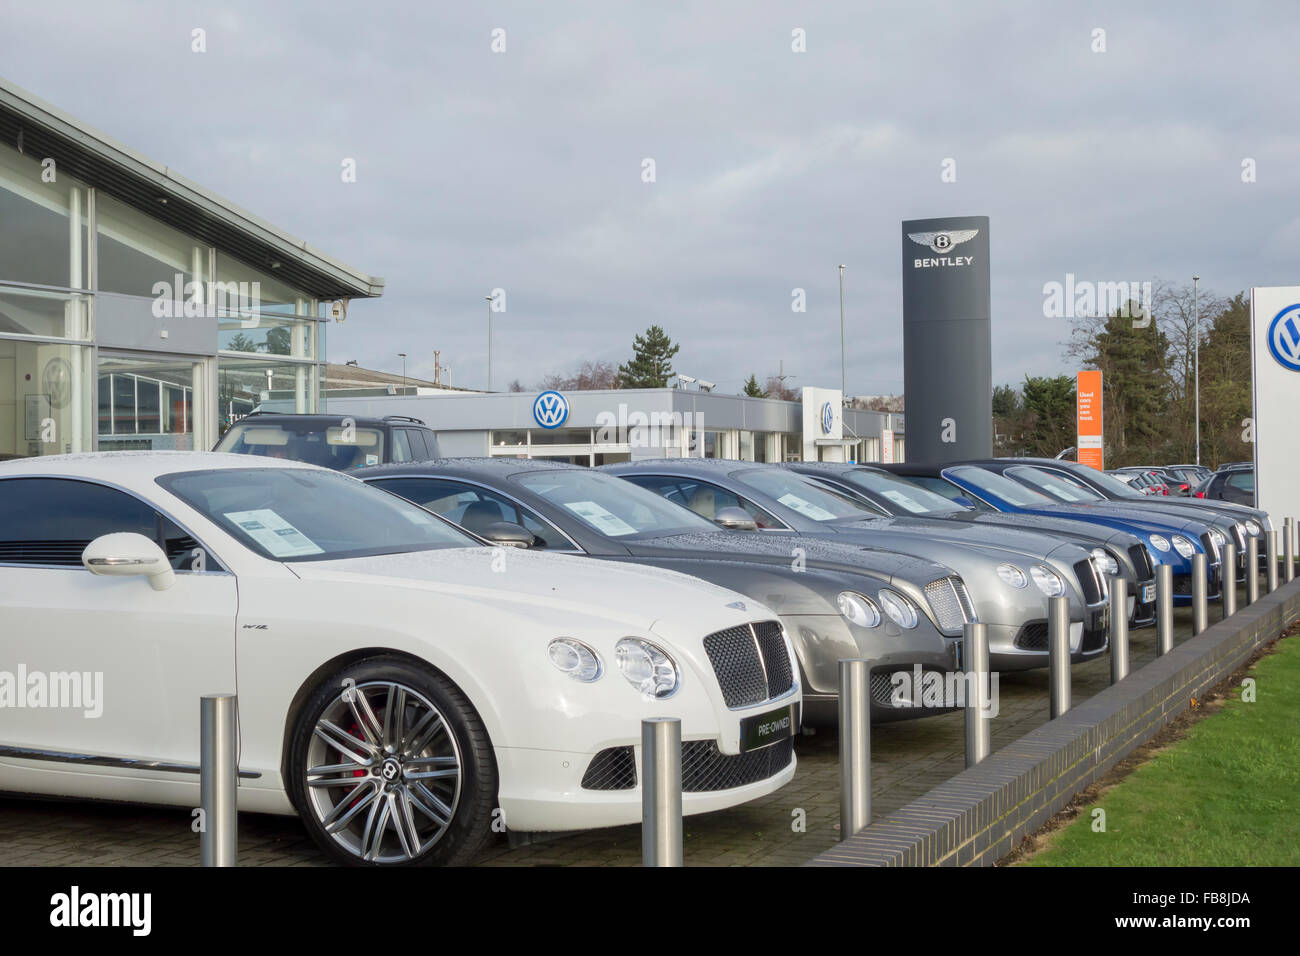 Vindis Bentley Luxury Car Showroom And Garage Roadside Sign Milton